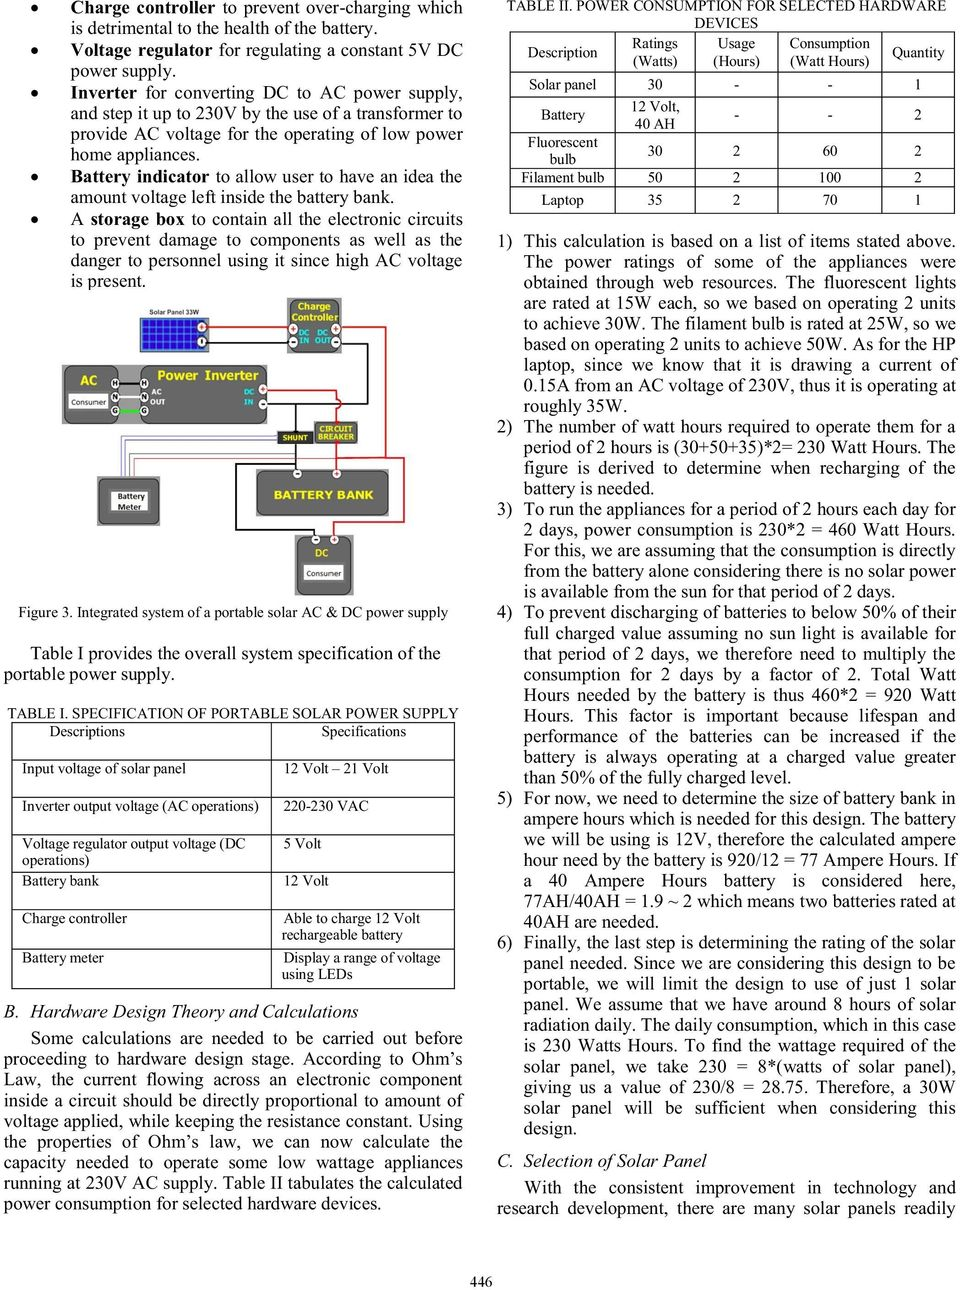 Building Of A Portable Solar Ac Dc Power Supply Pdf Circuitlab Pmosfet Buck Converter Switching Battery Indicator To Allow User Have An Idea The Amount Voltage Left Inside